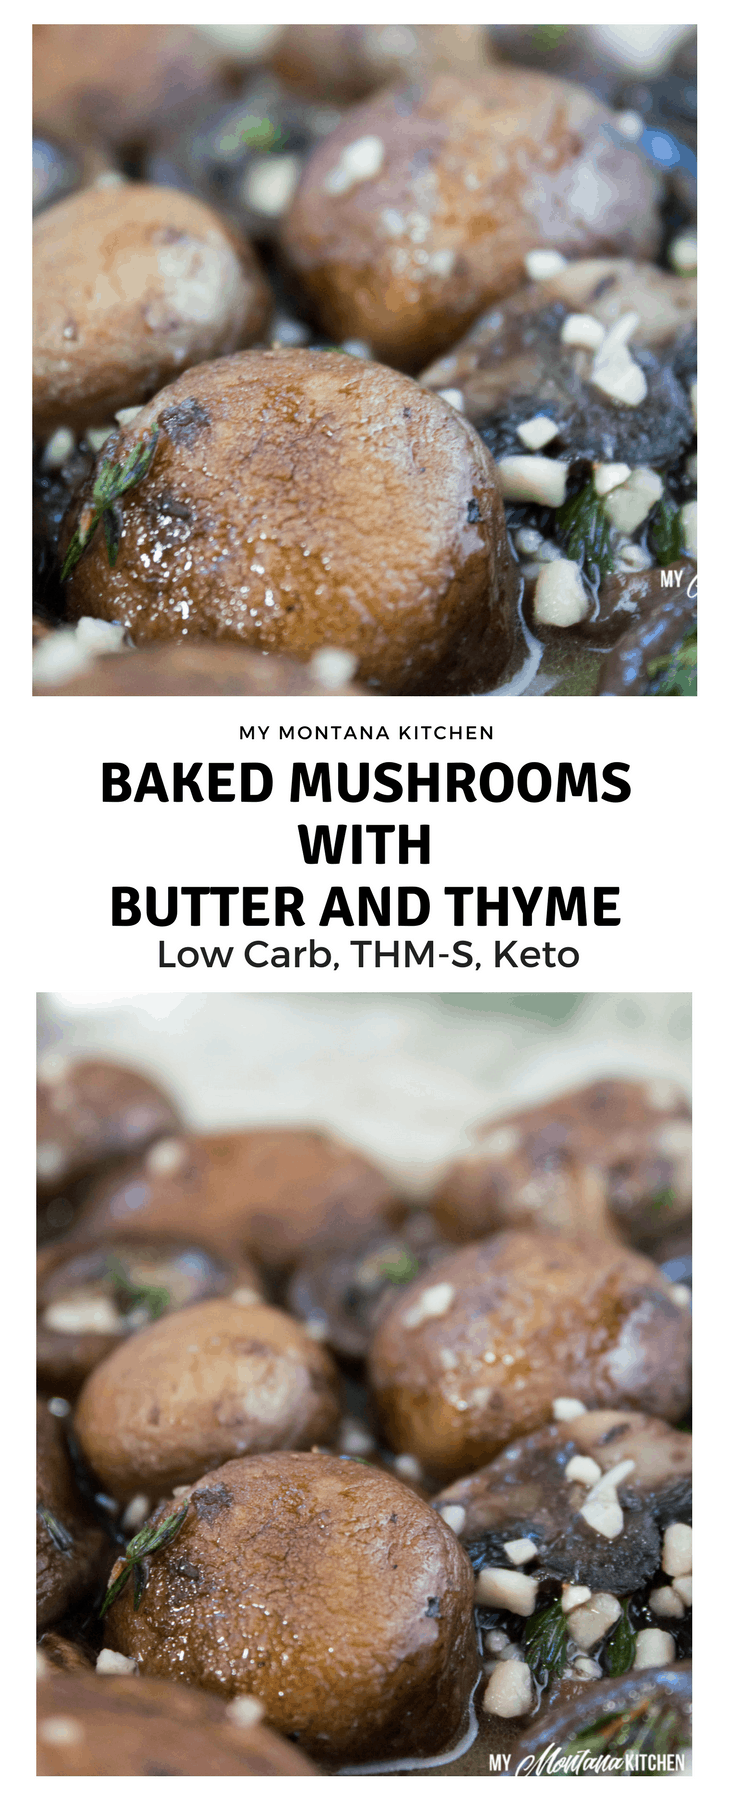 Baked Mushrooms with Butter and Thyme (Low Carb, Keto, THM-S) #trimhealthymama #thm #thms #lowcarb #keto #mushrooms #bakedmushrooms #thmsidedishes #glutenfree